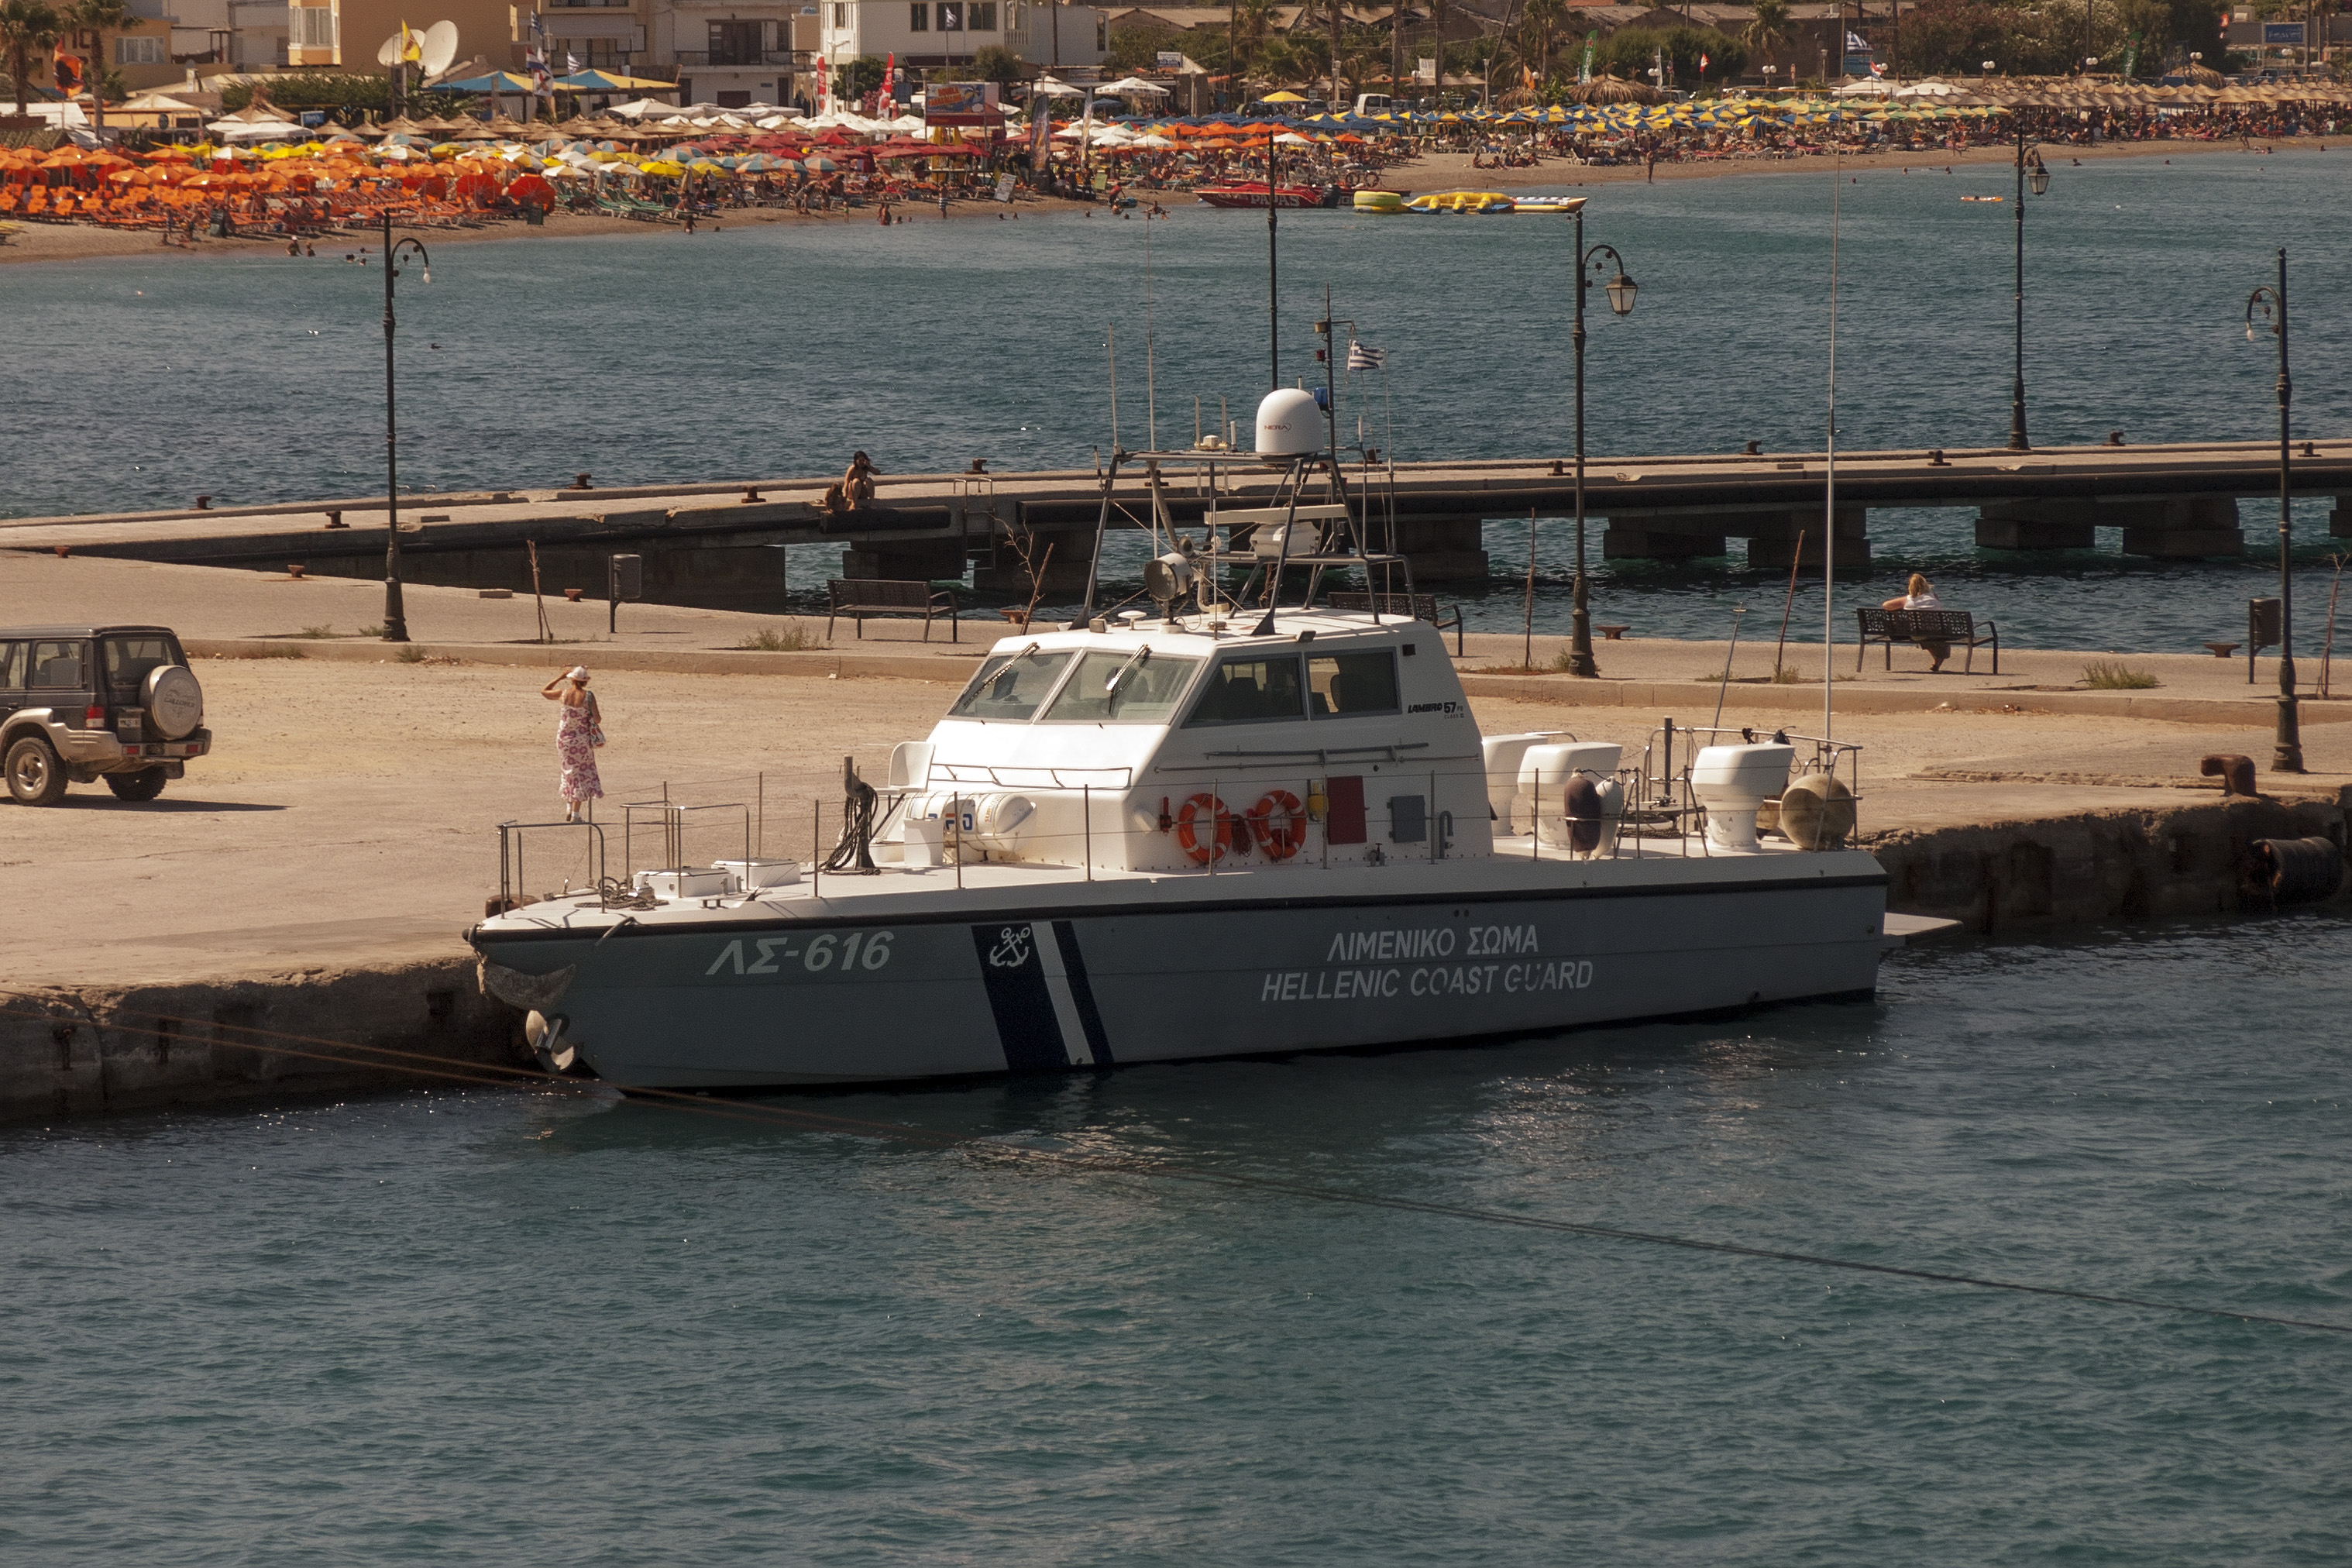 File:LS-616 patrol boat in Kos jpg - Wikimedia Commons